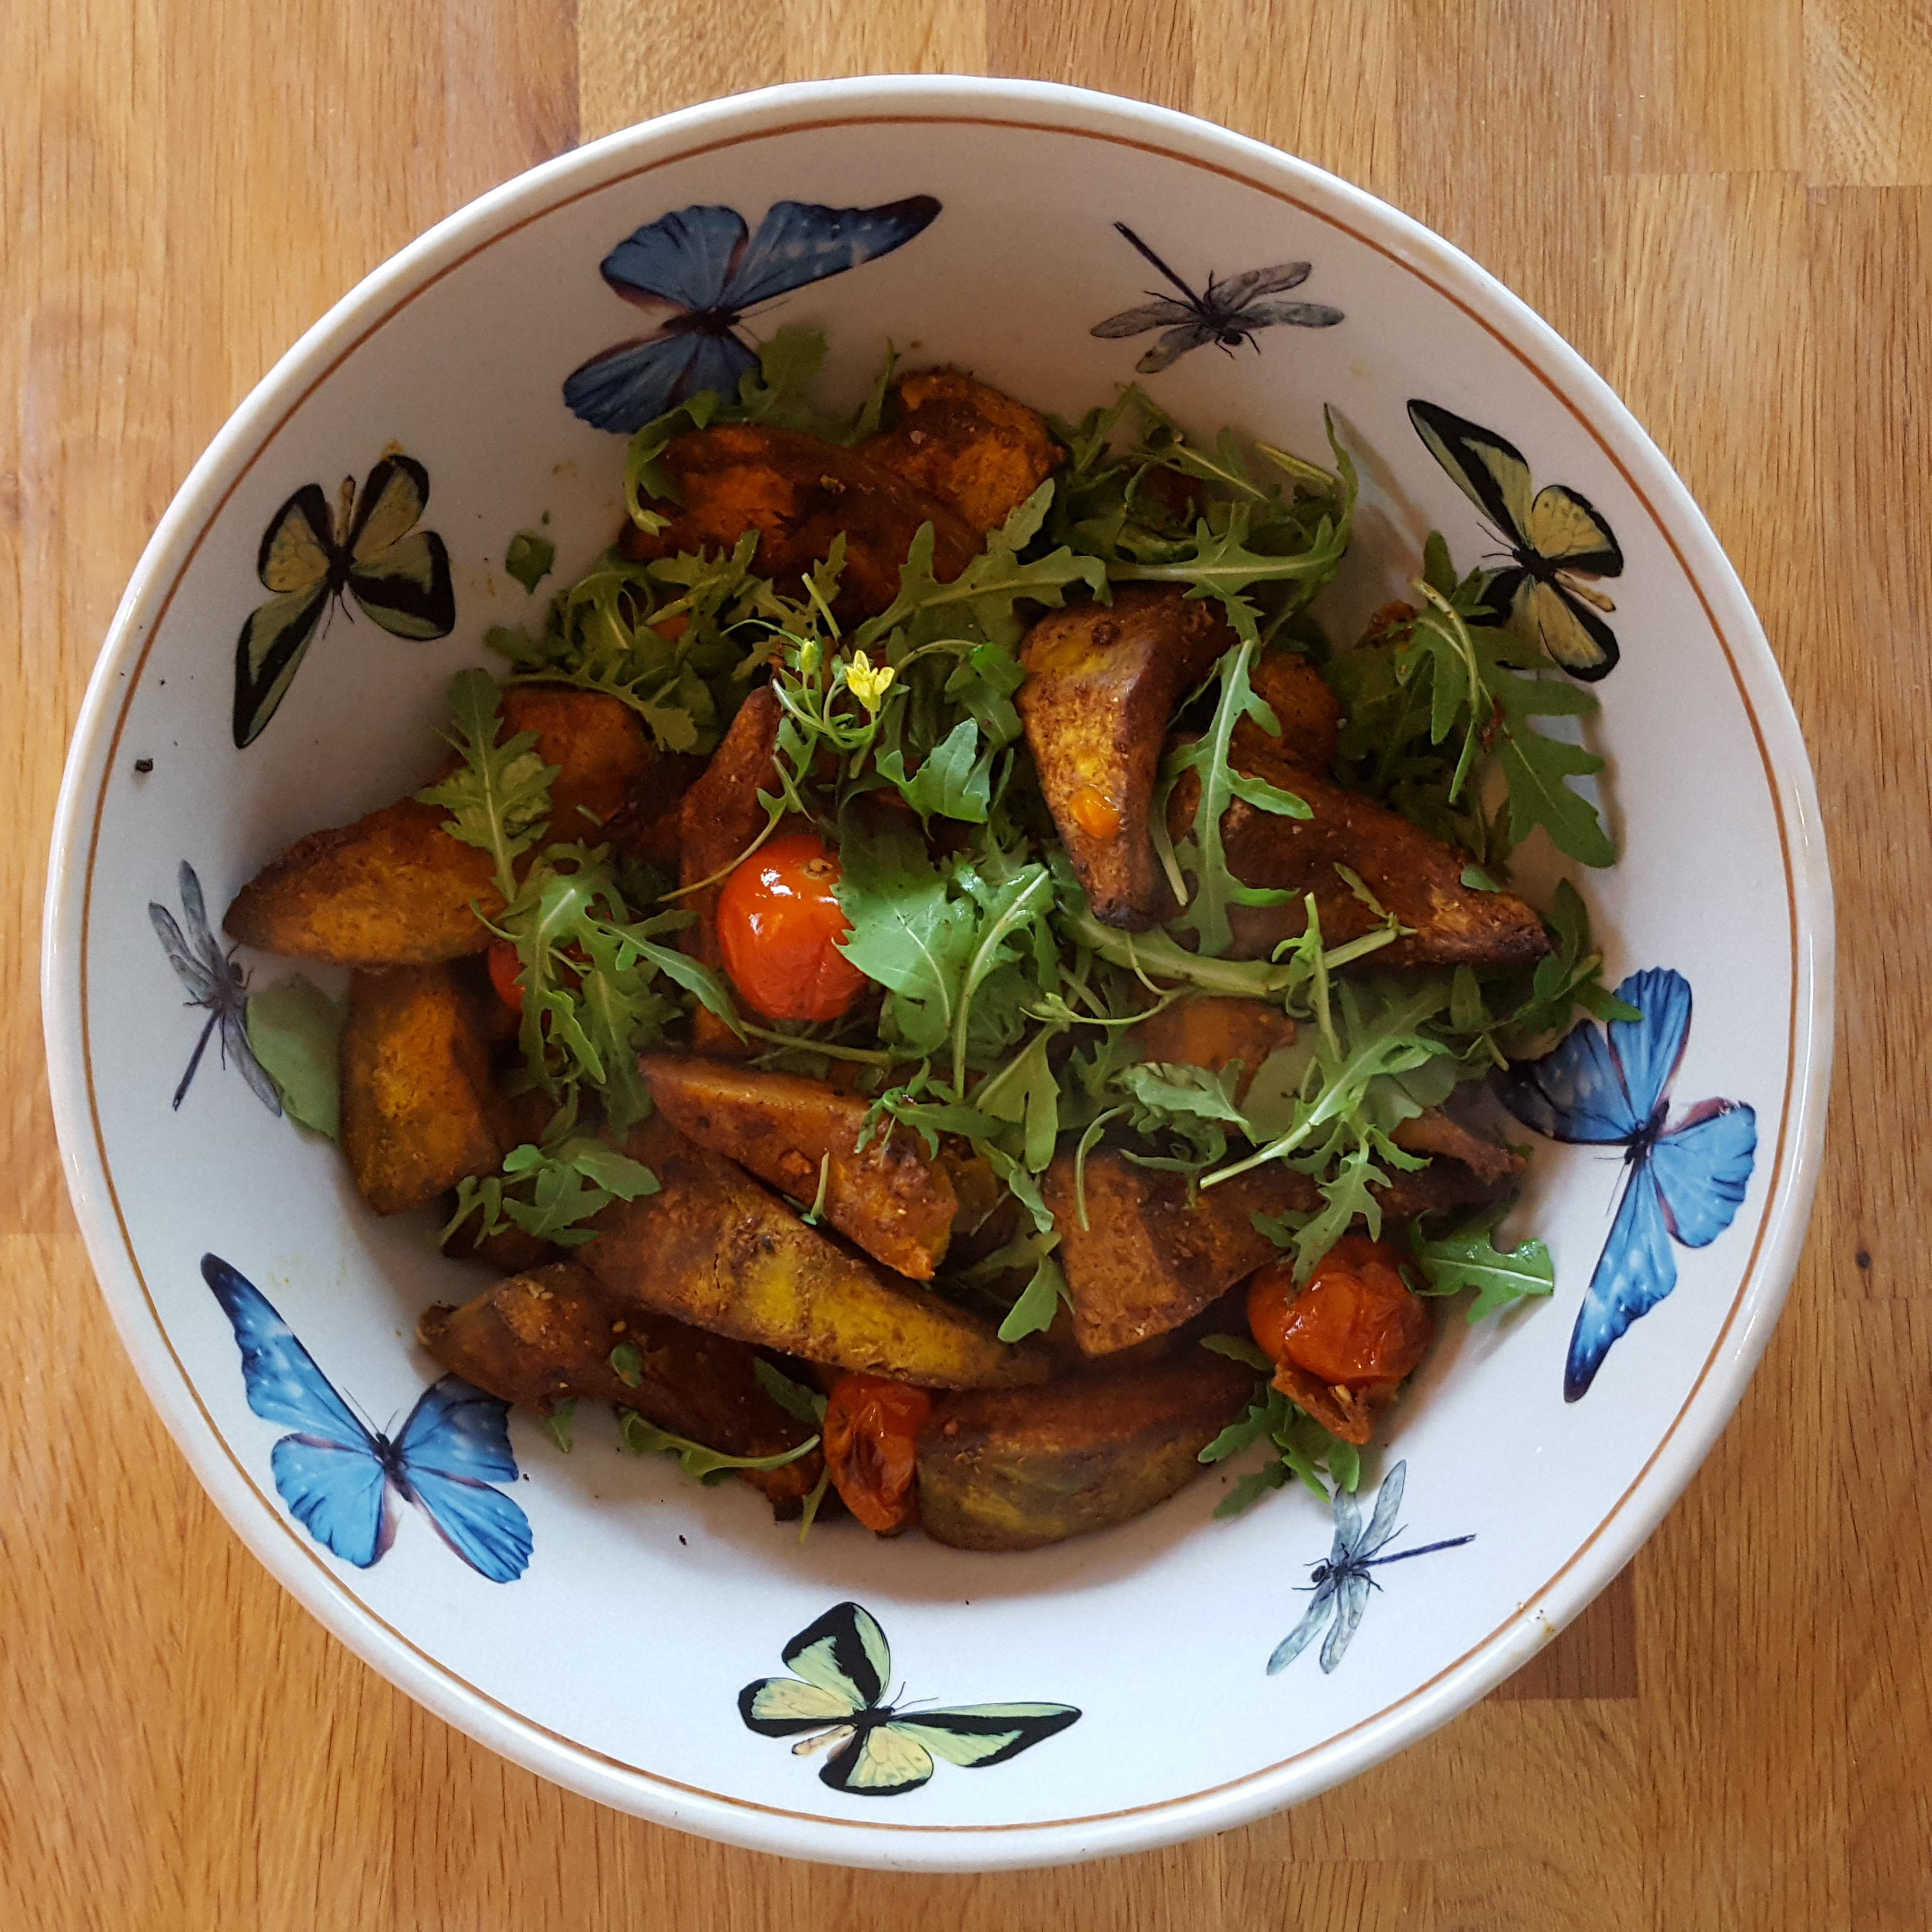 Tossing the squash and rocket